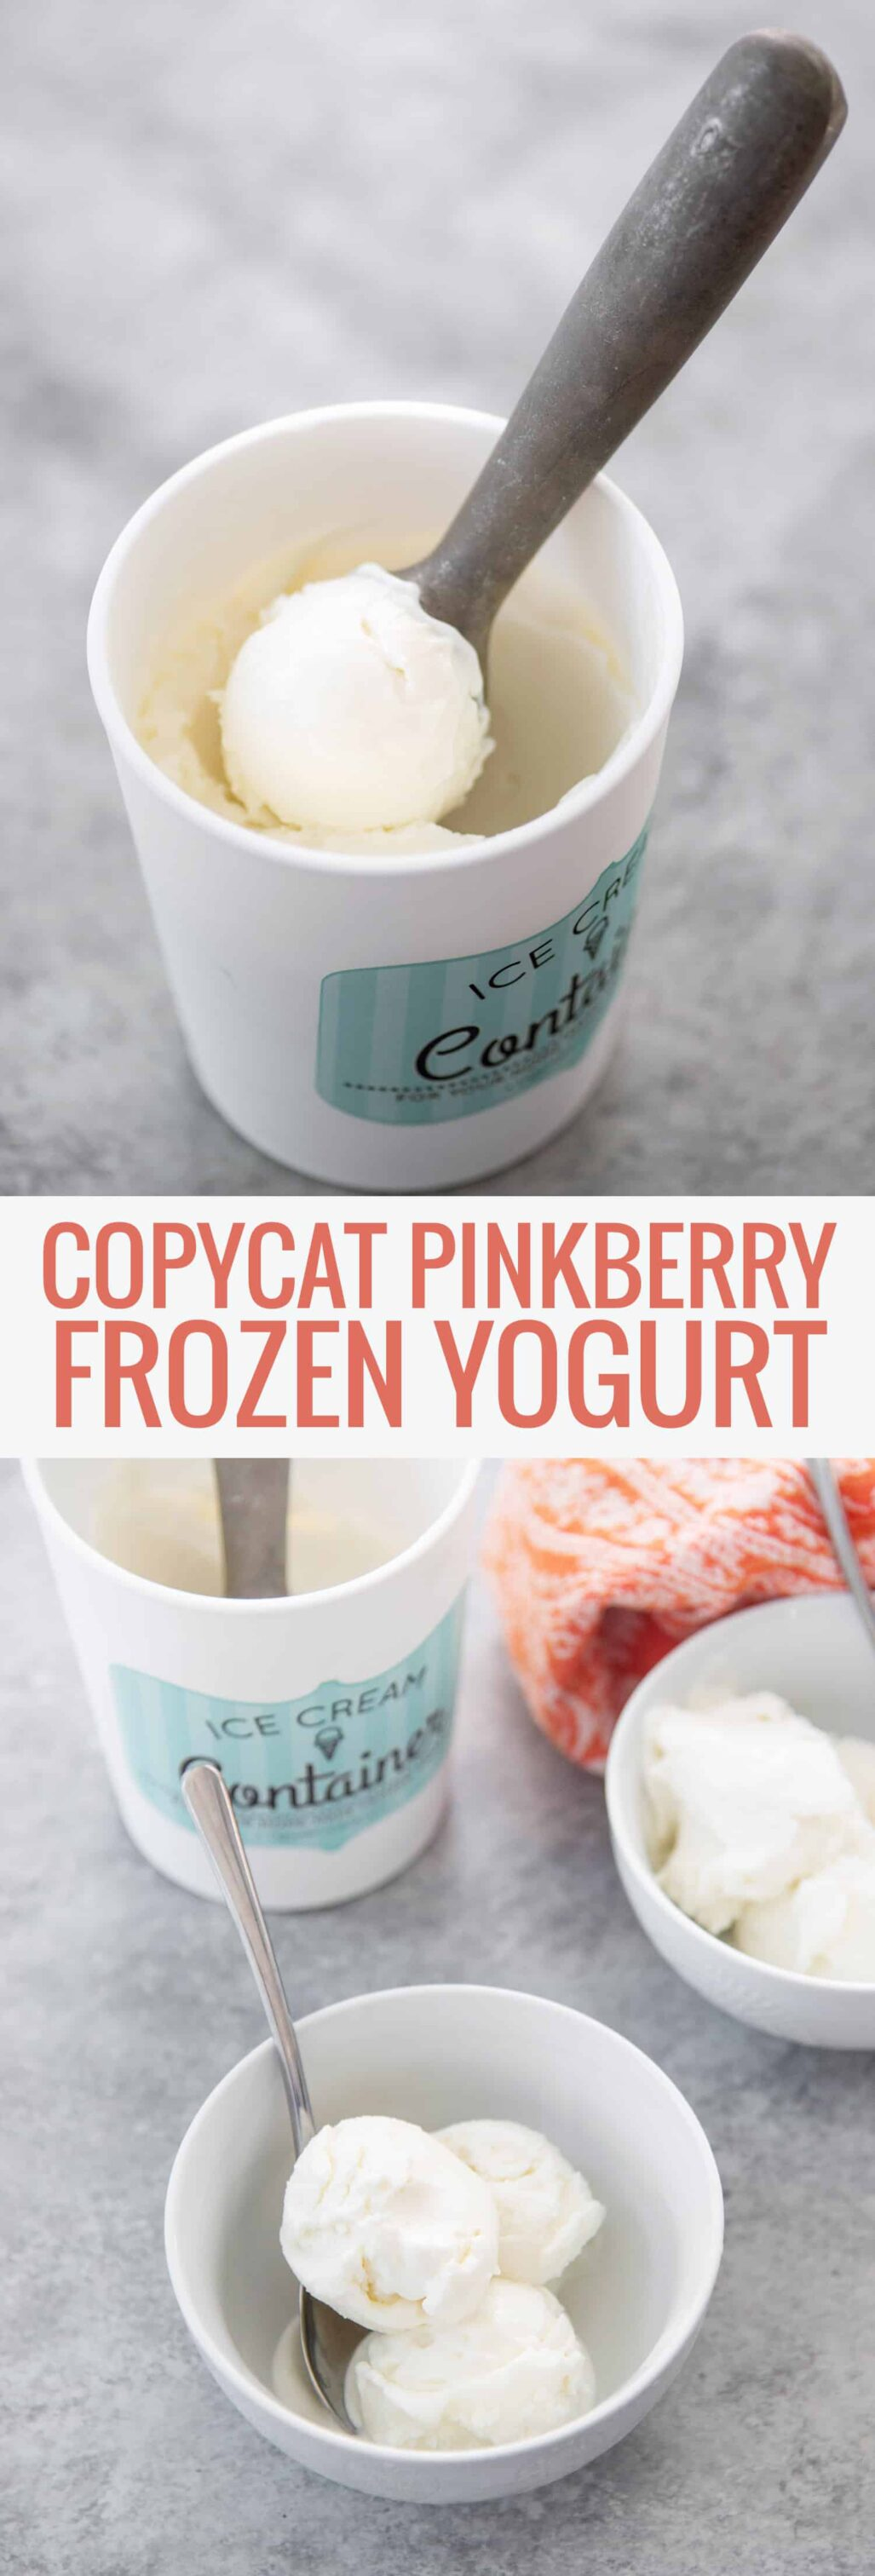 Copycat Pinkberry Frozen Yogurt! If you love tart frozen yogurt, you will love this recipe! Just three ingredients! Enjoy as is or topped with fresh fruit. | www.delishknowledge.com